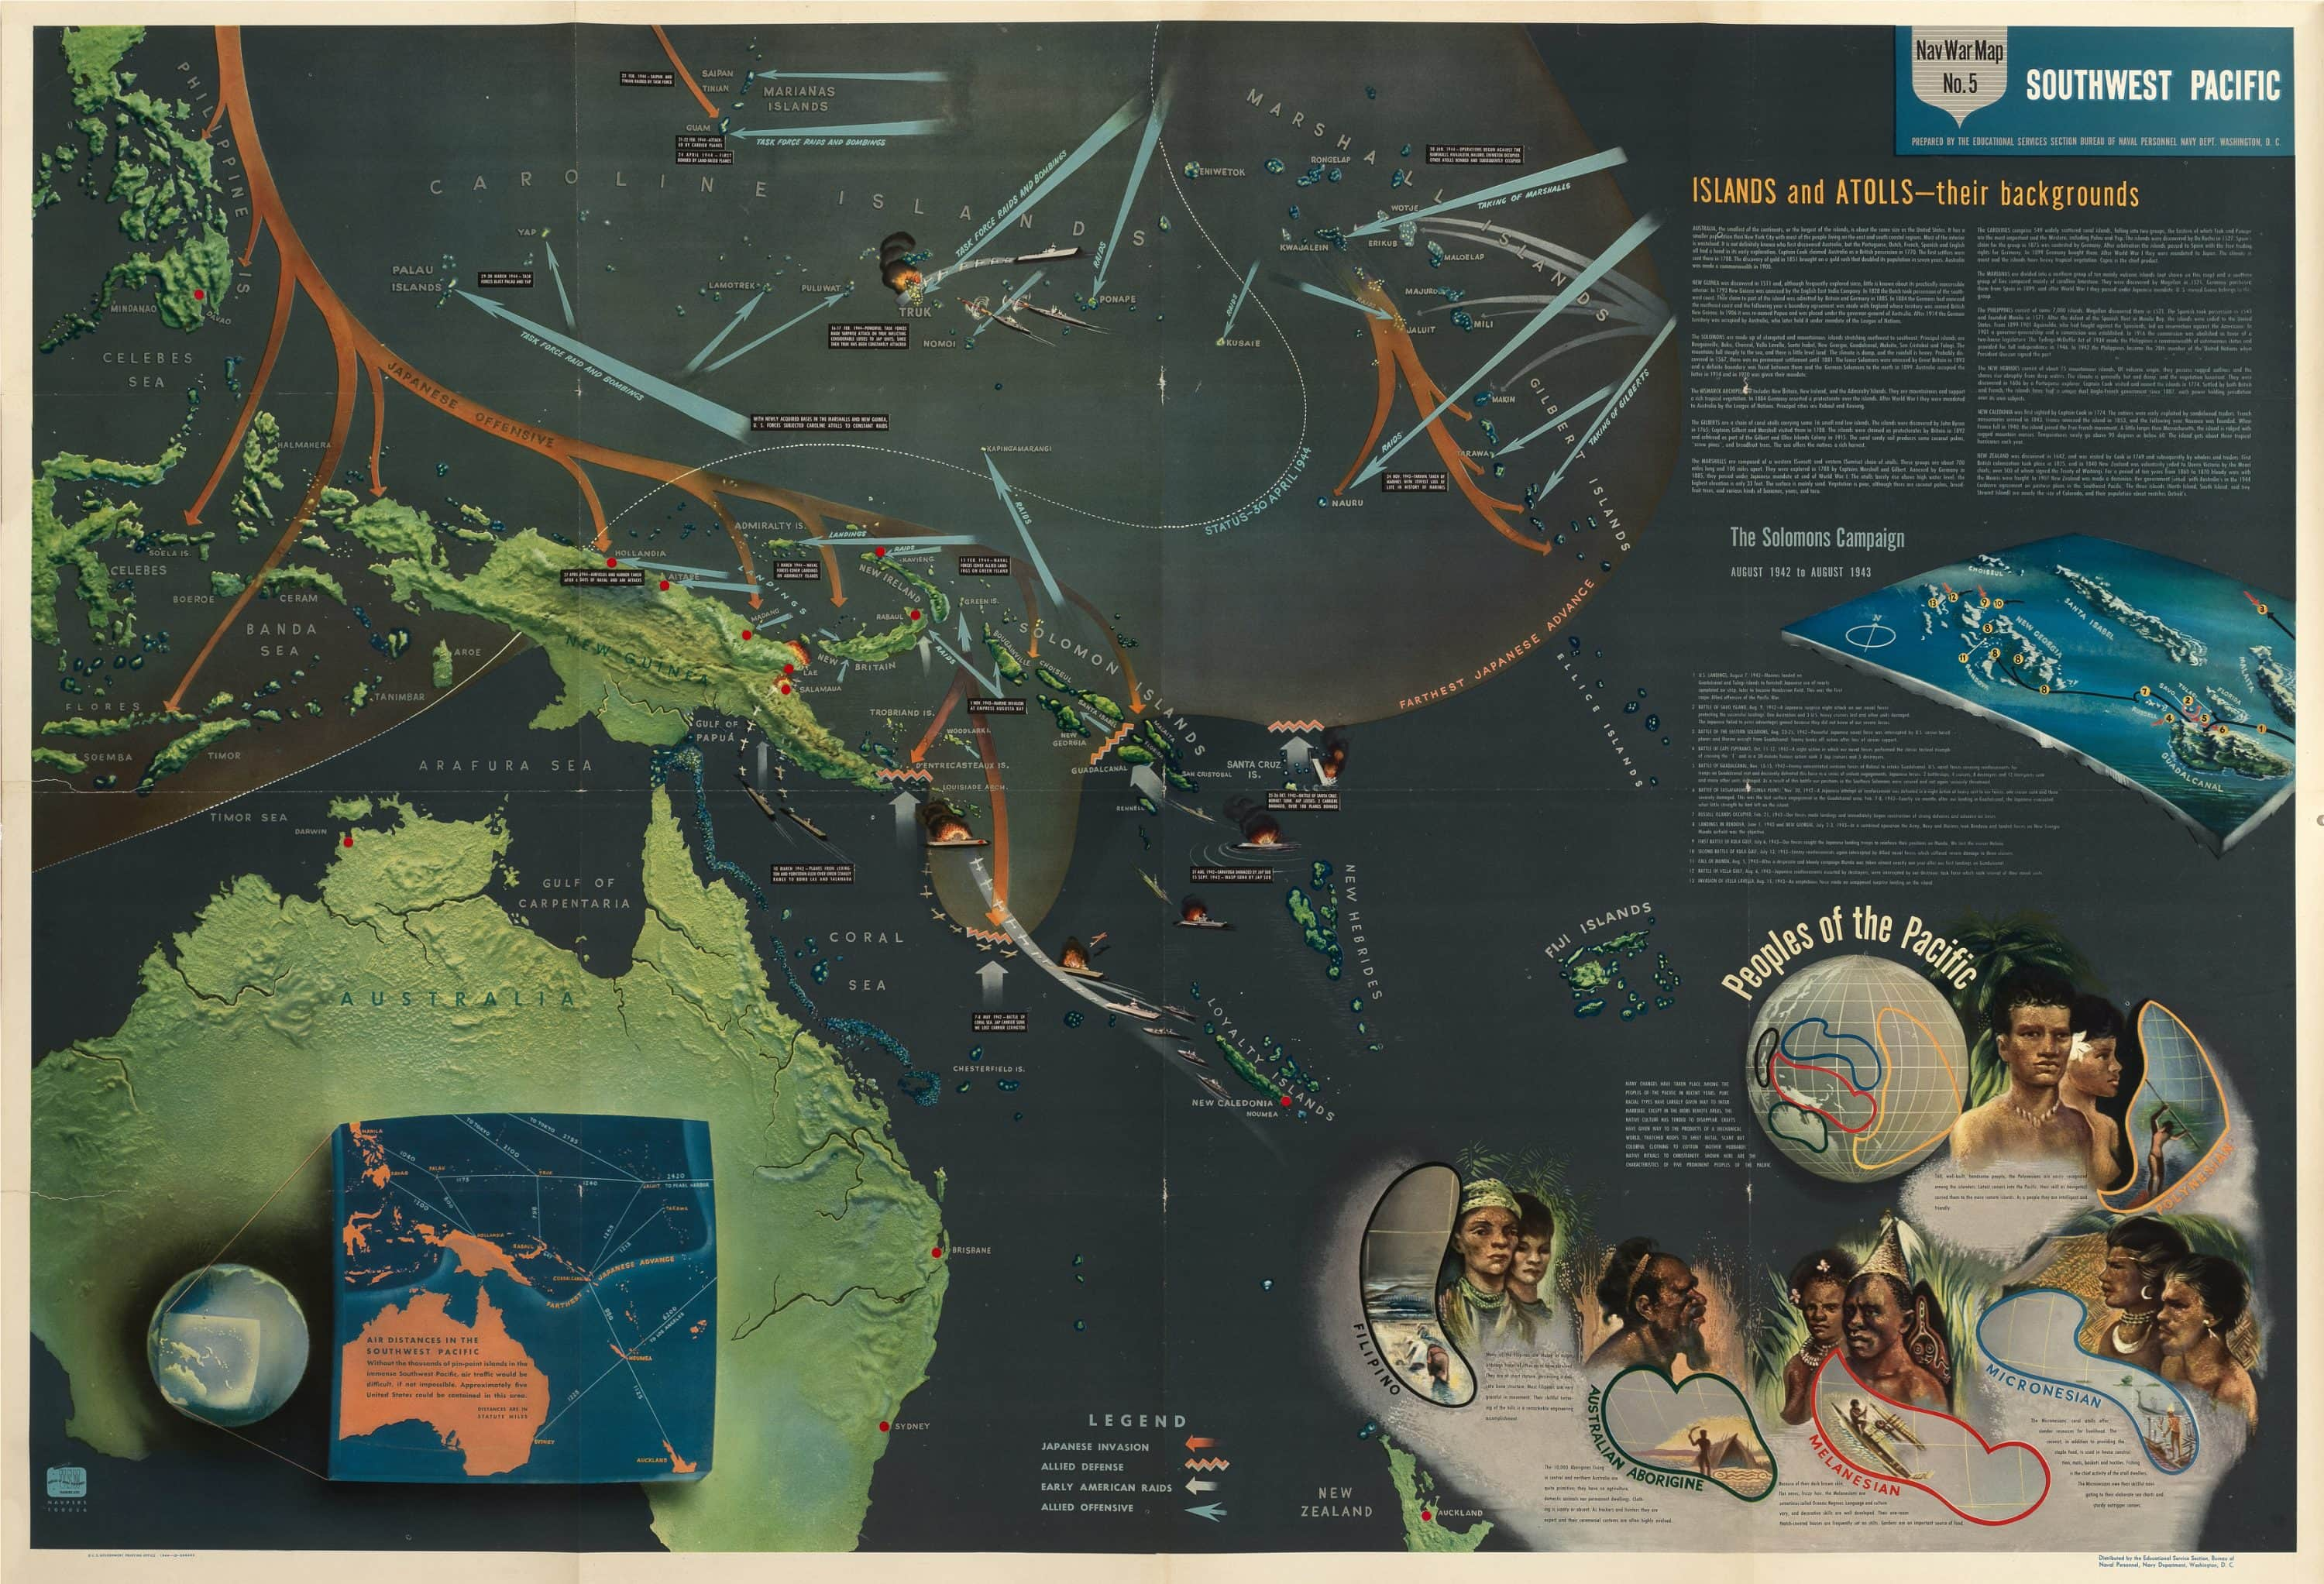 Spectacular Nav War Map of the Southwest Pacific